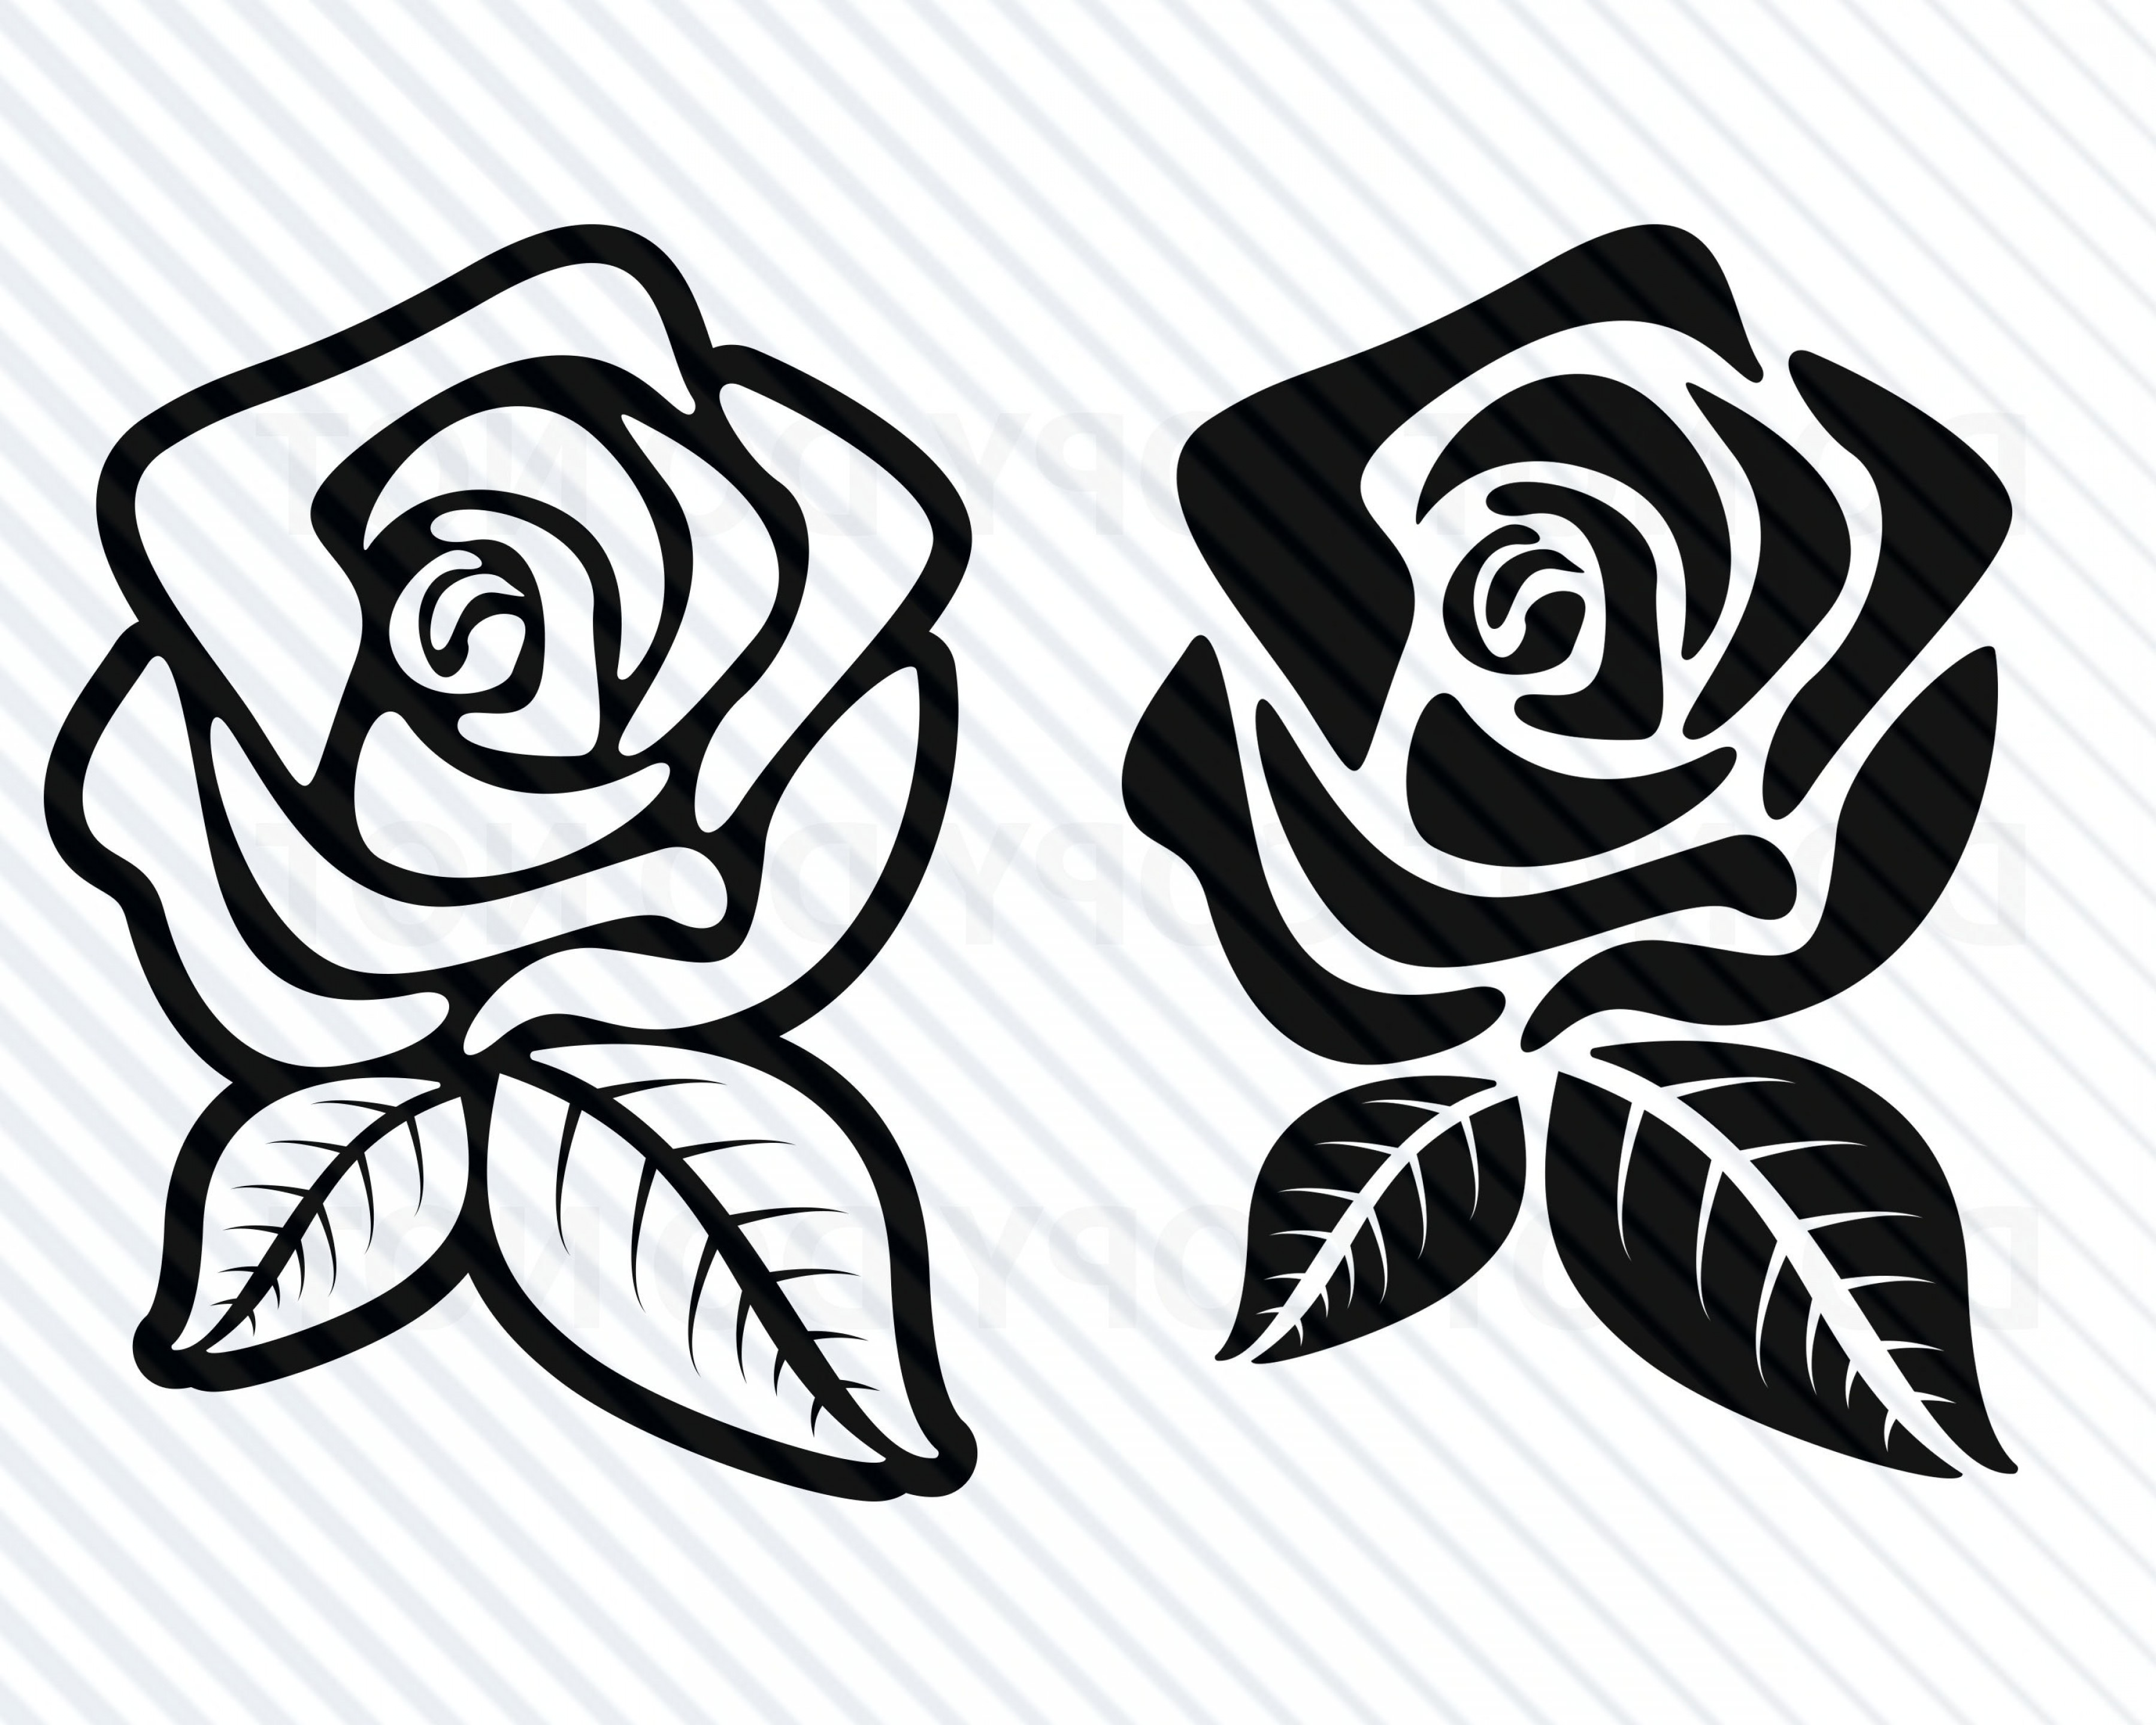 Free svg clipart for cricut flowers black and white graphic free download Black Rose Flowers Svg Files For Cricut | HandandBeak graphic free download